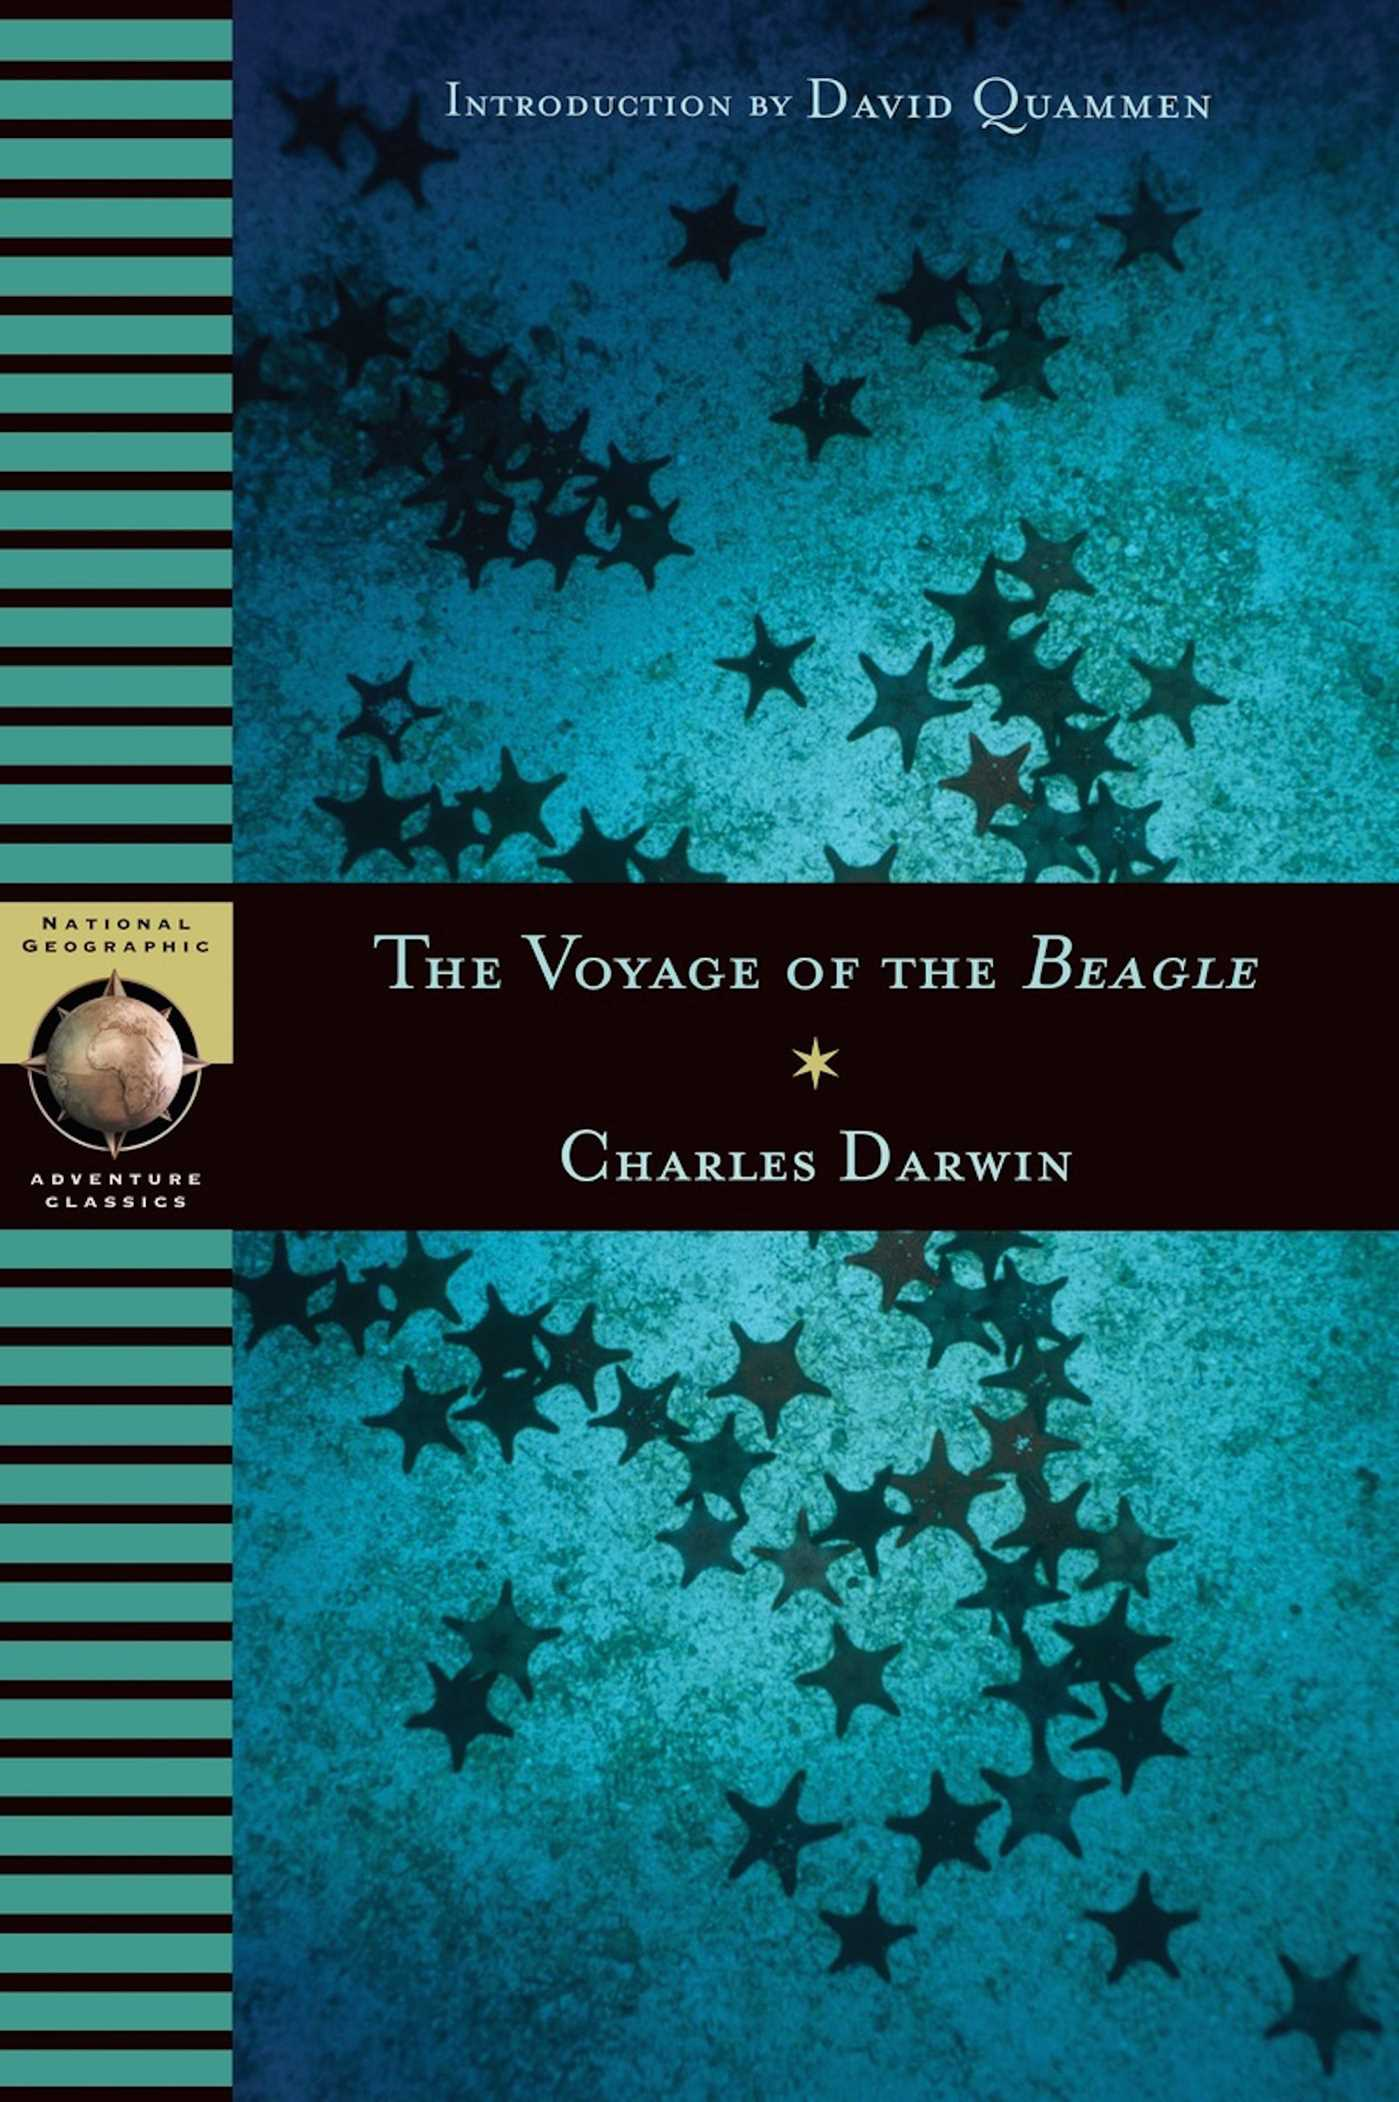 the life and voyage of david quammen The voyage of the beagle (national geographic adventure classics) ebook: this edition of the classic travel memoir is enhanced with an introduction by bestselling nature writer david quammen he even includes stories about the people on the ship, the ship's life, and maintenance.